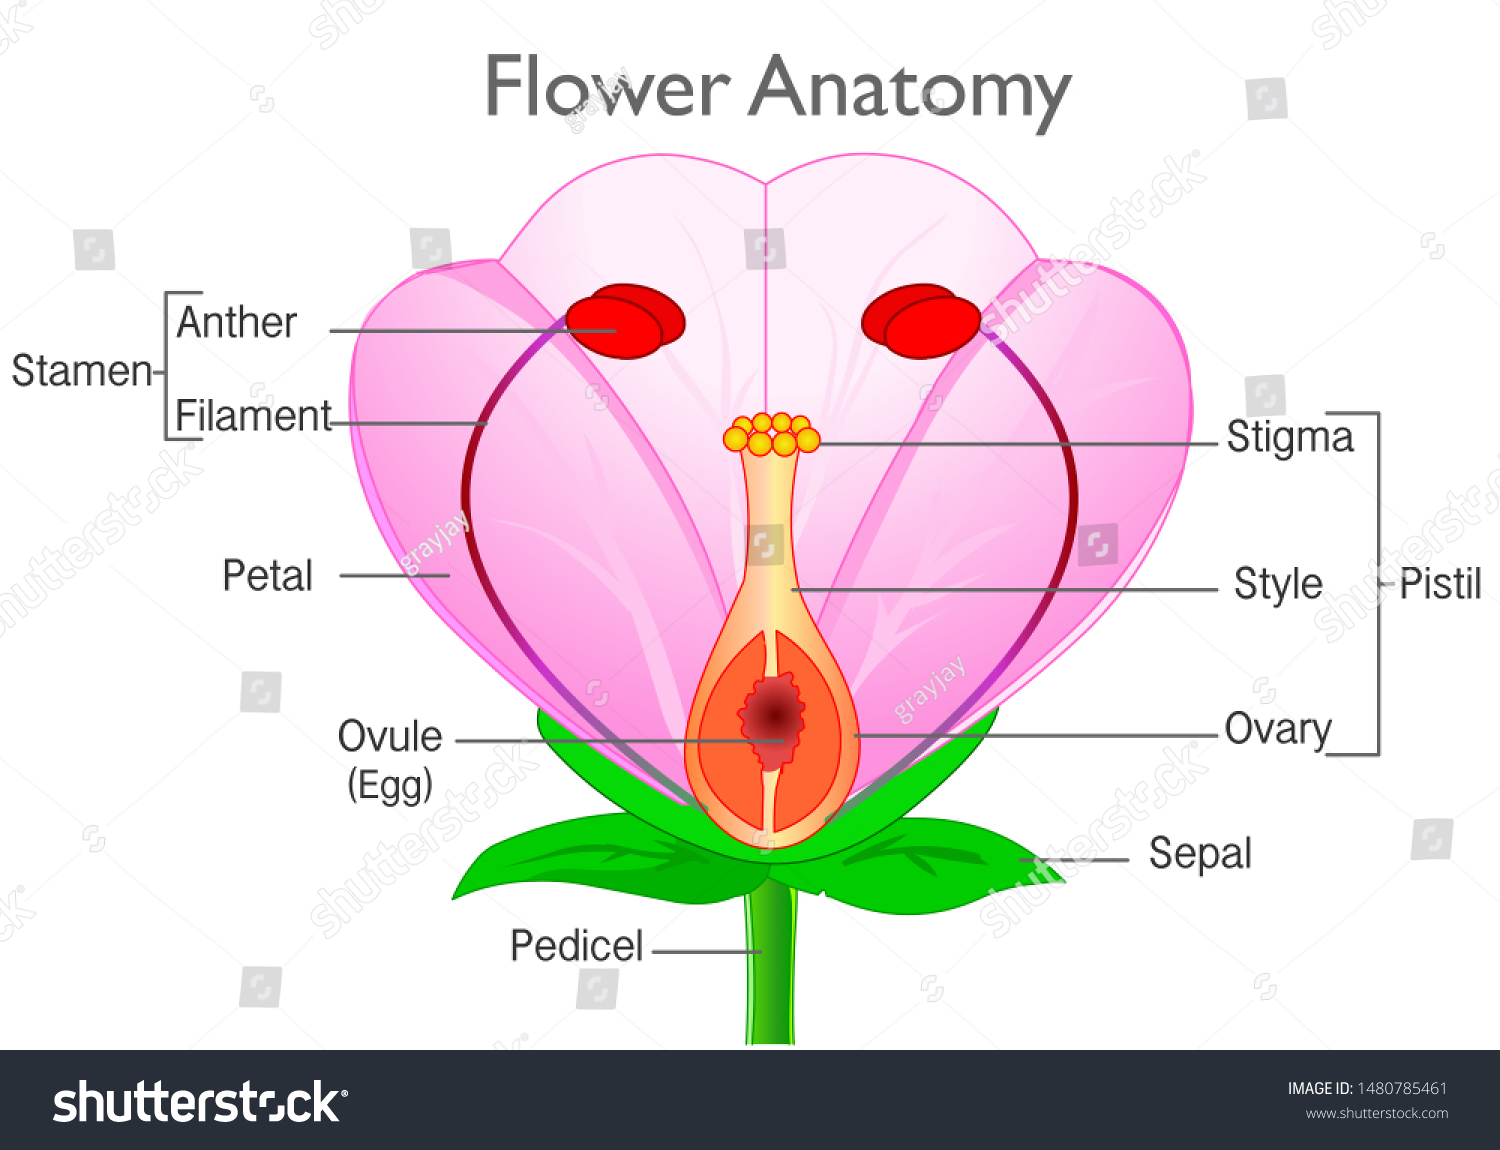 Flower Anatomy Plant Reproductive System Diagram Stock